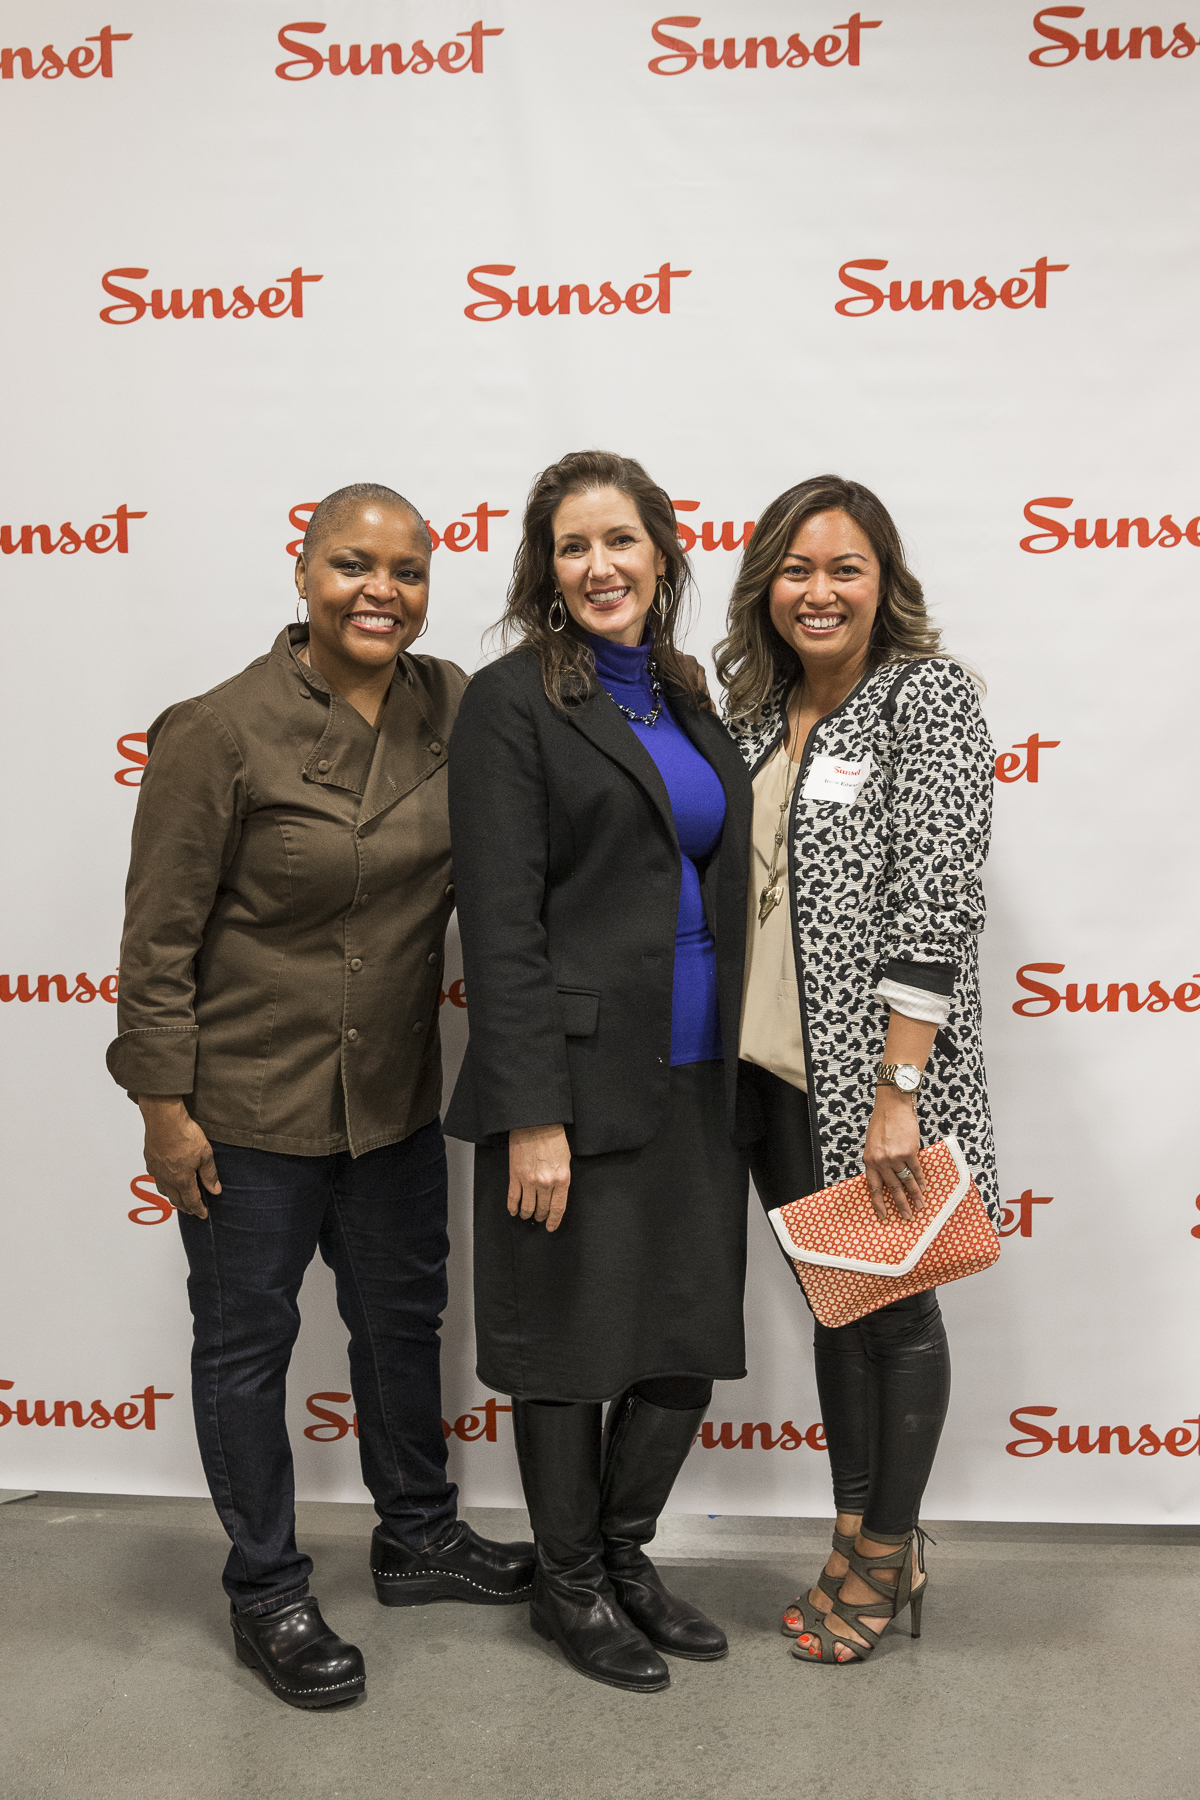 Chef Tanya Holland, Oakland Mayor Libby Schaaf, Sunset Editor-in-Chief Irene Edwards